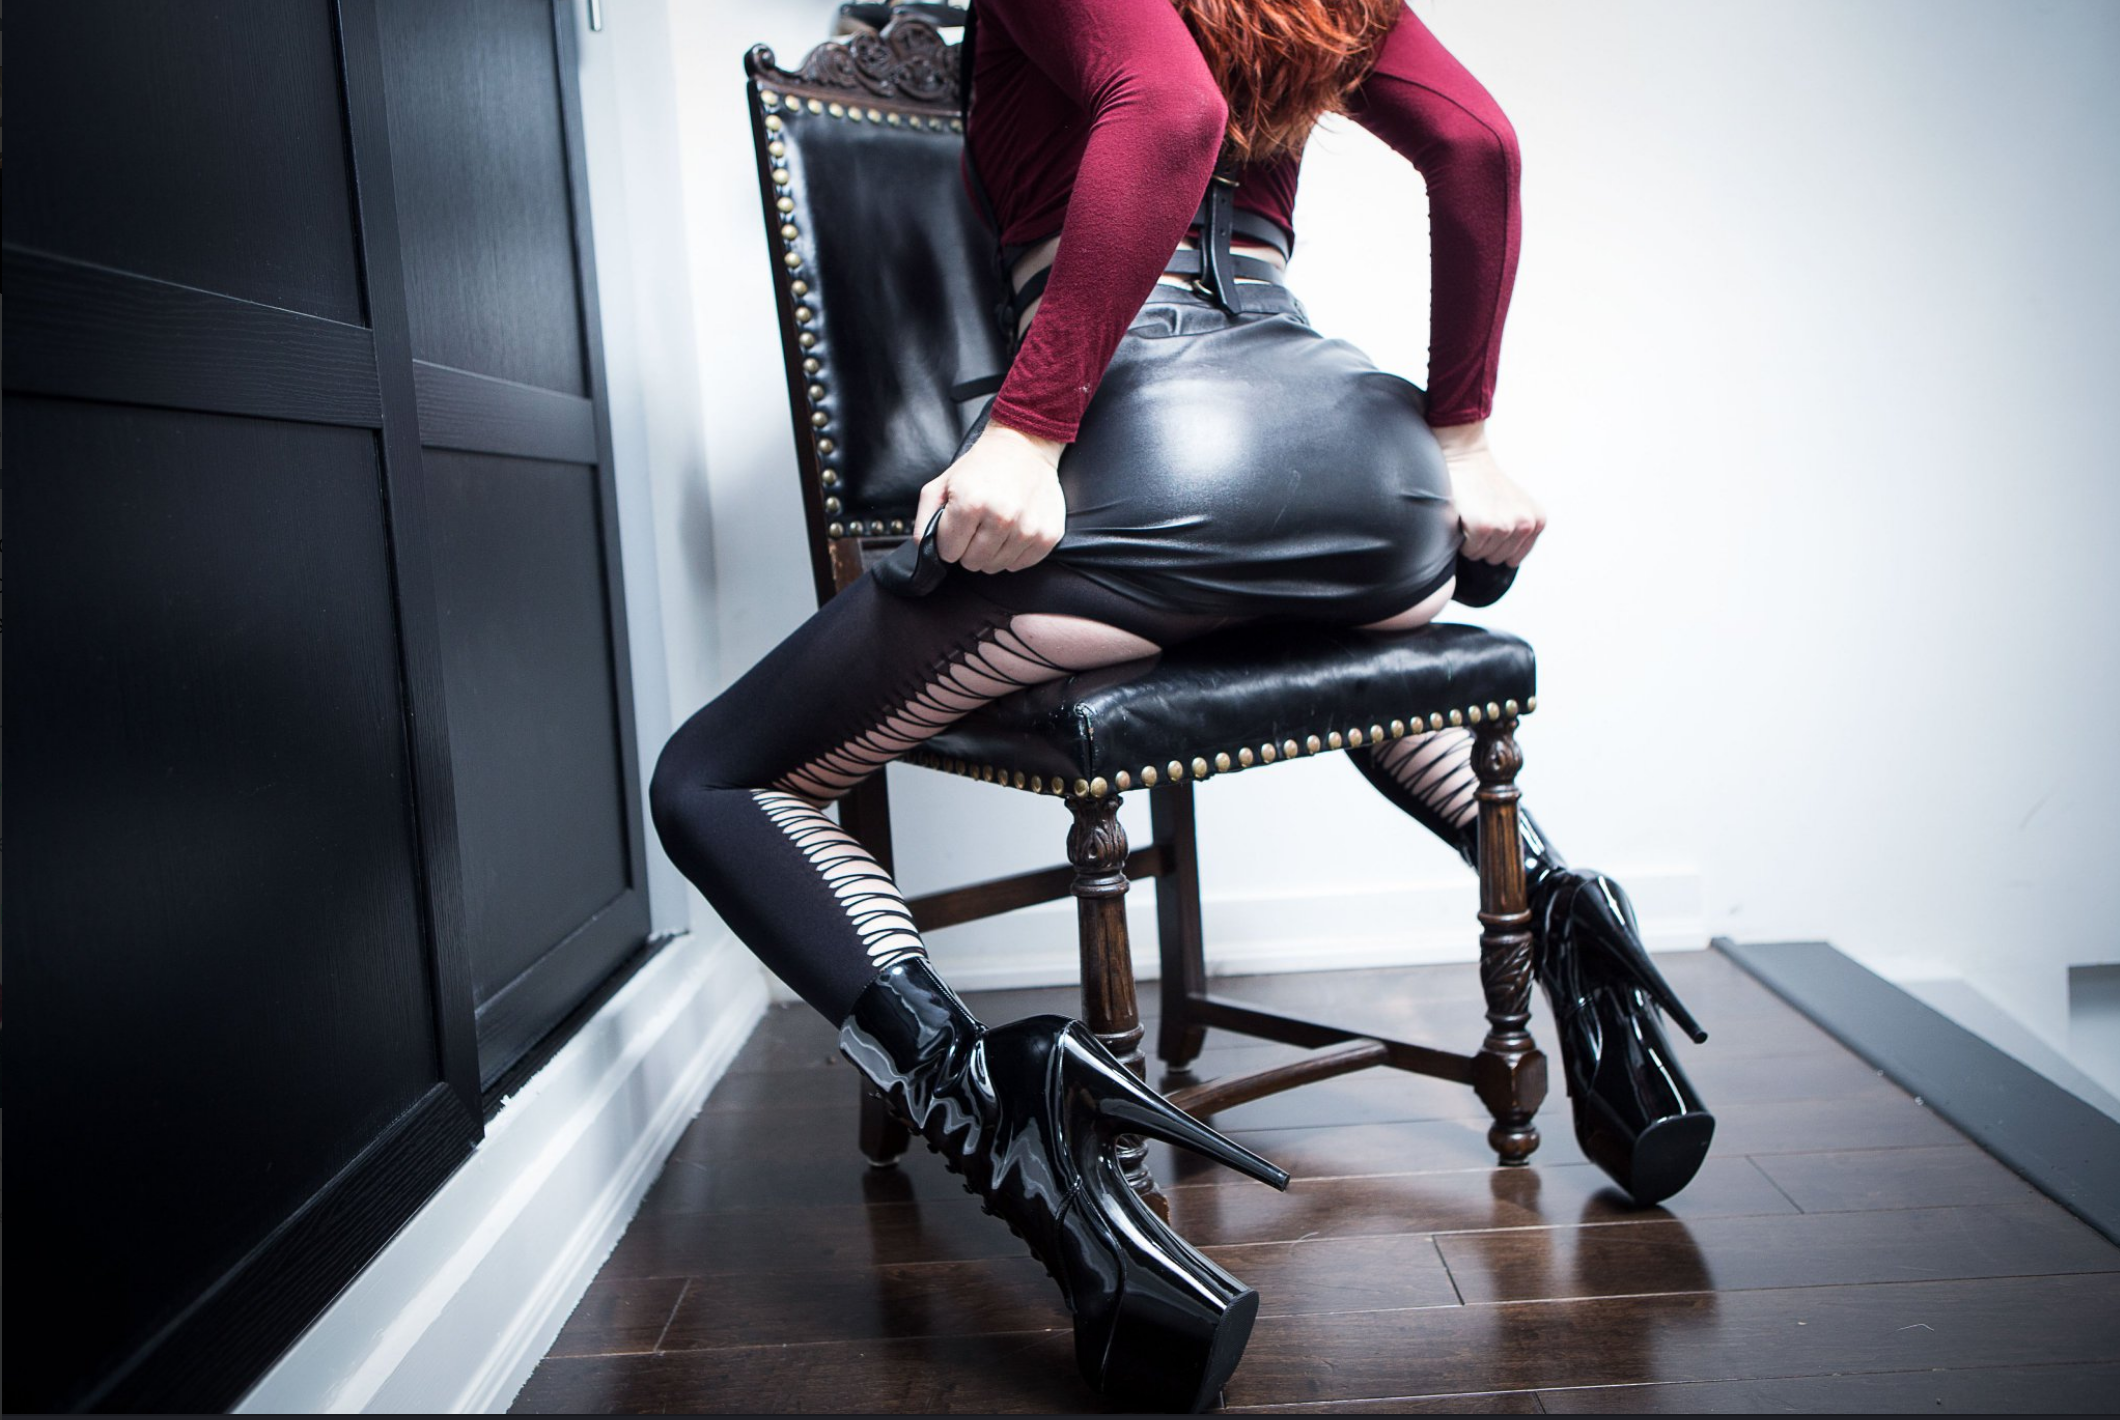 British Mistress Ass Shiny Latex